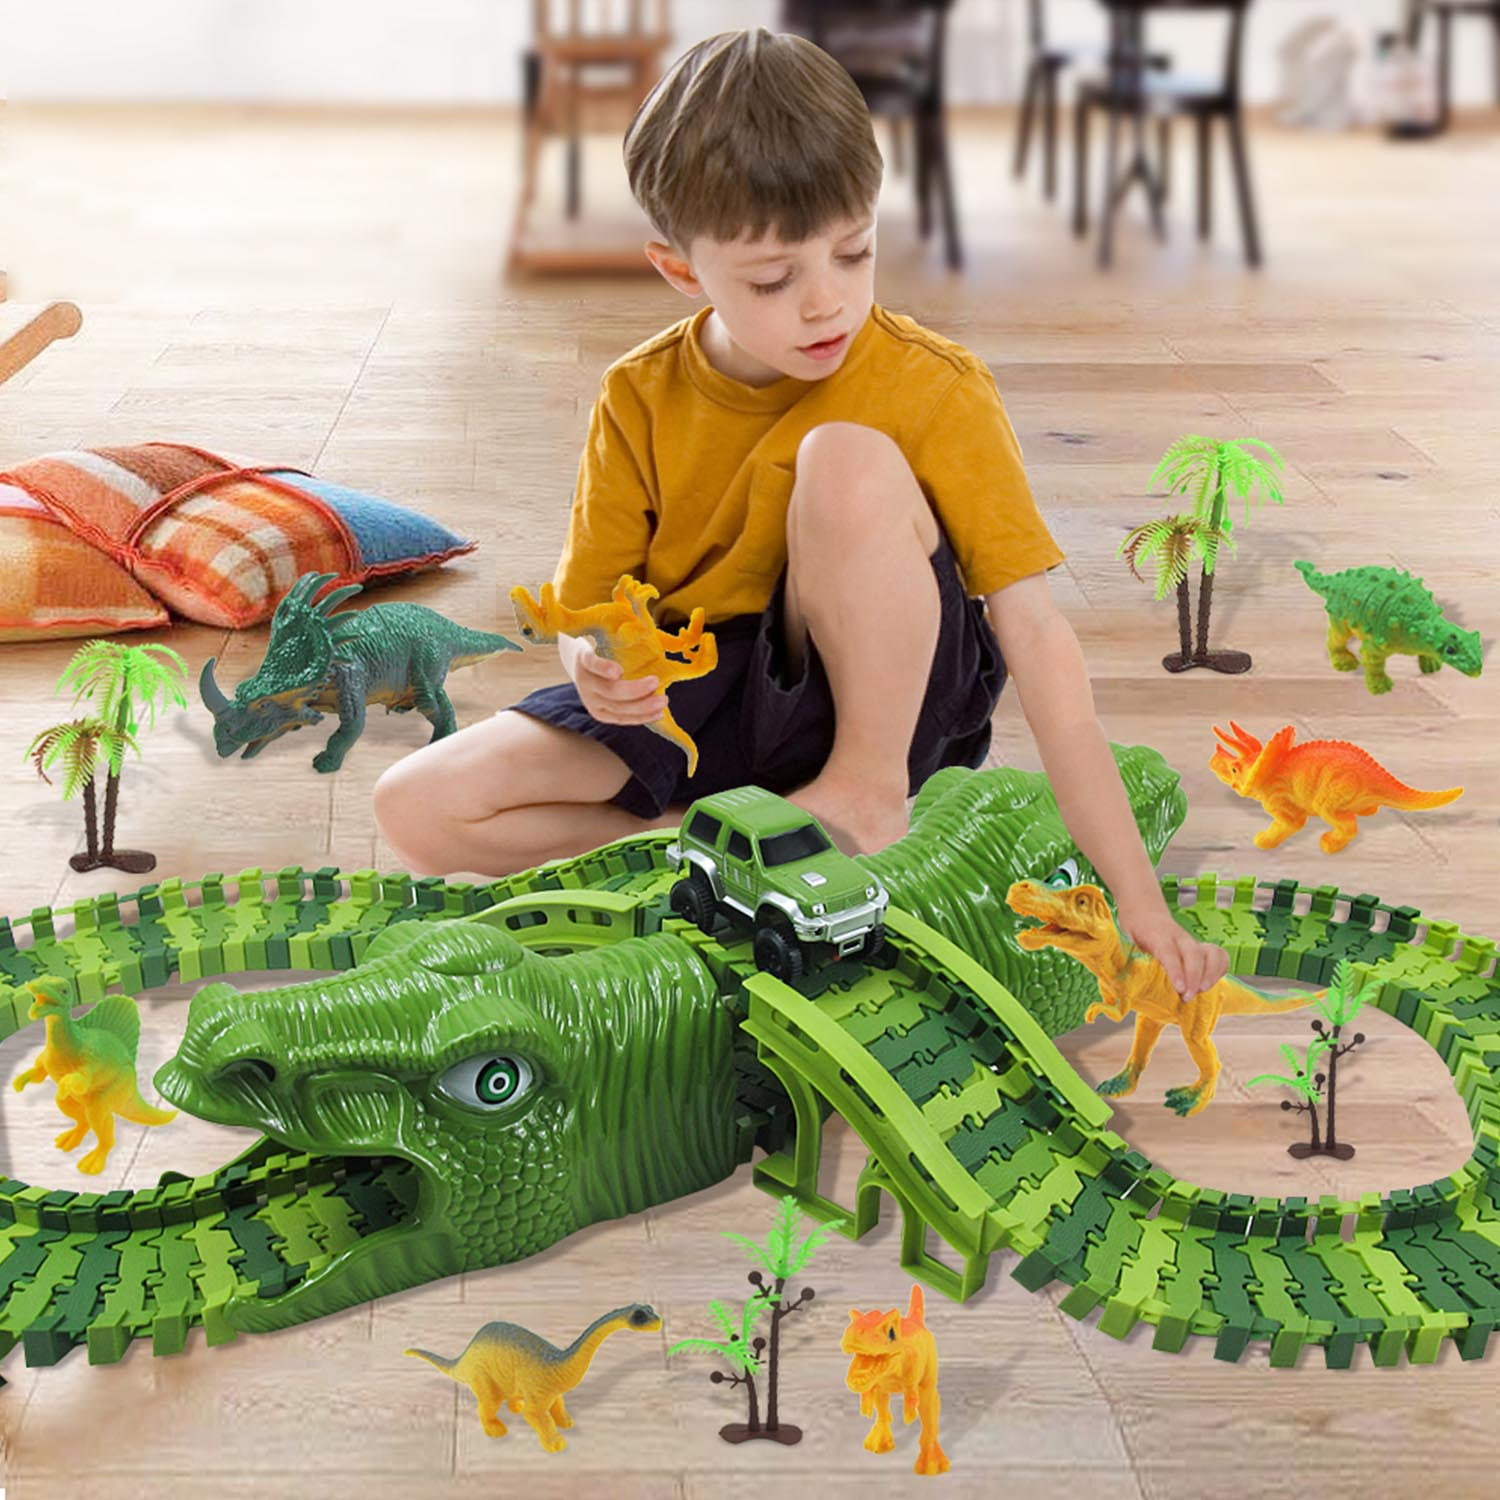 153PCS DIY Assemble Jurassic Dinosaur Race Track Set Magical Flexible Racing Track Train Electric Race Car Dinosaur Model Toy